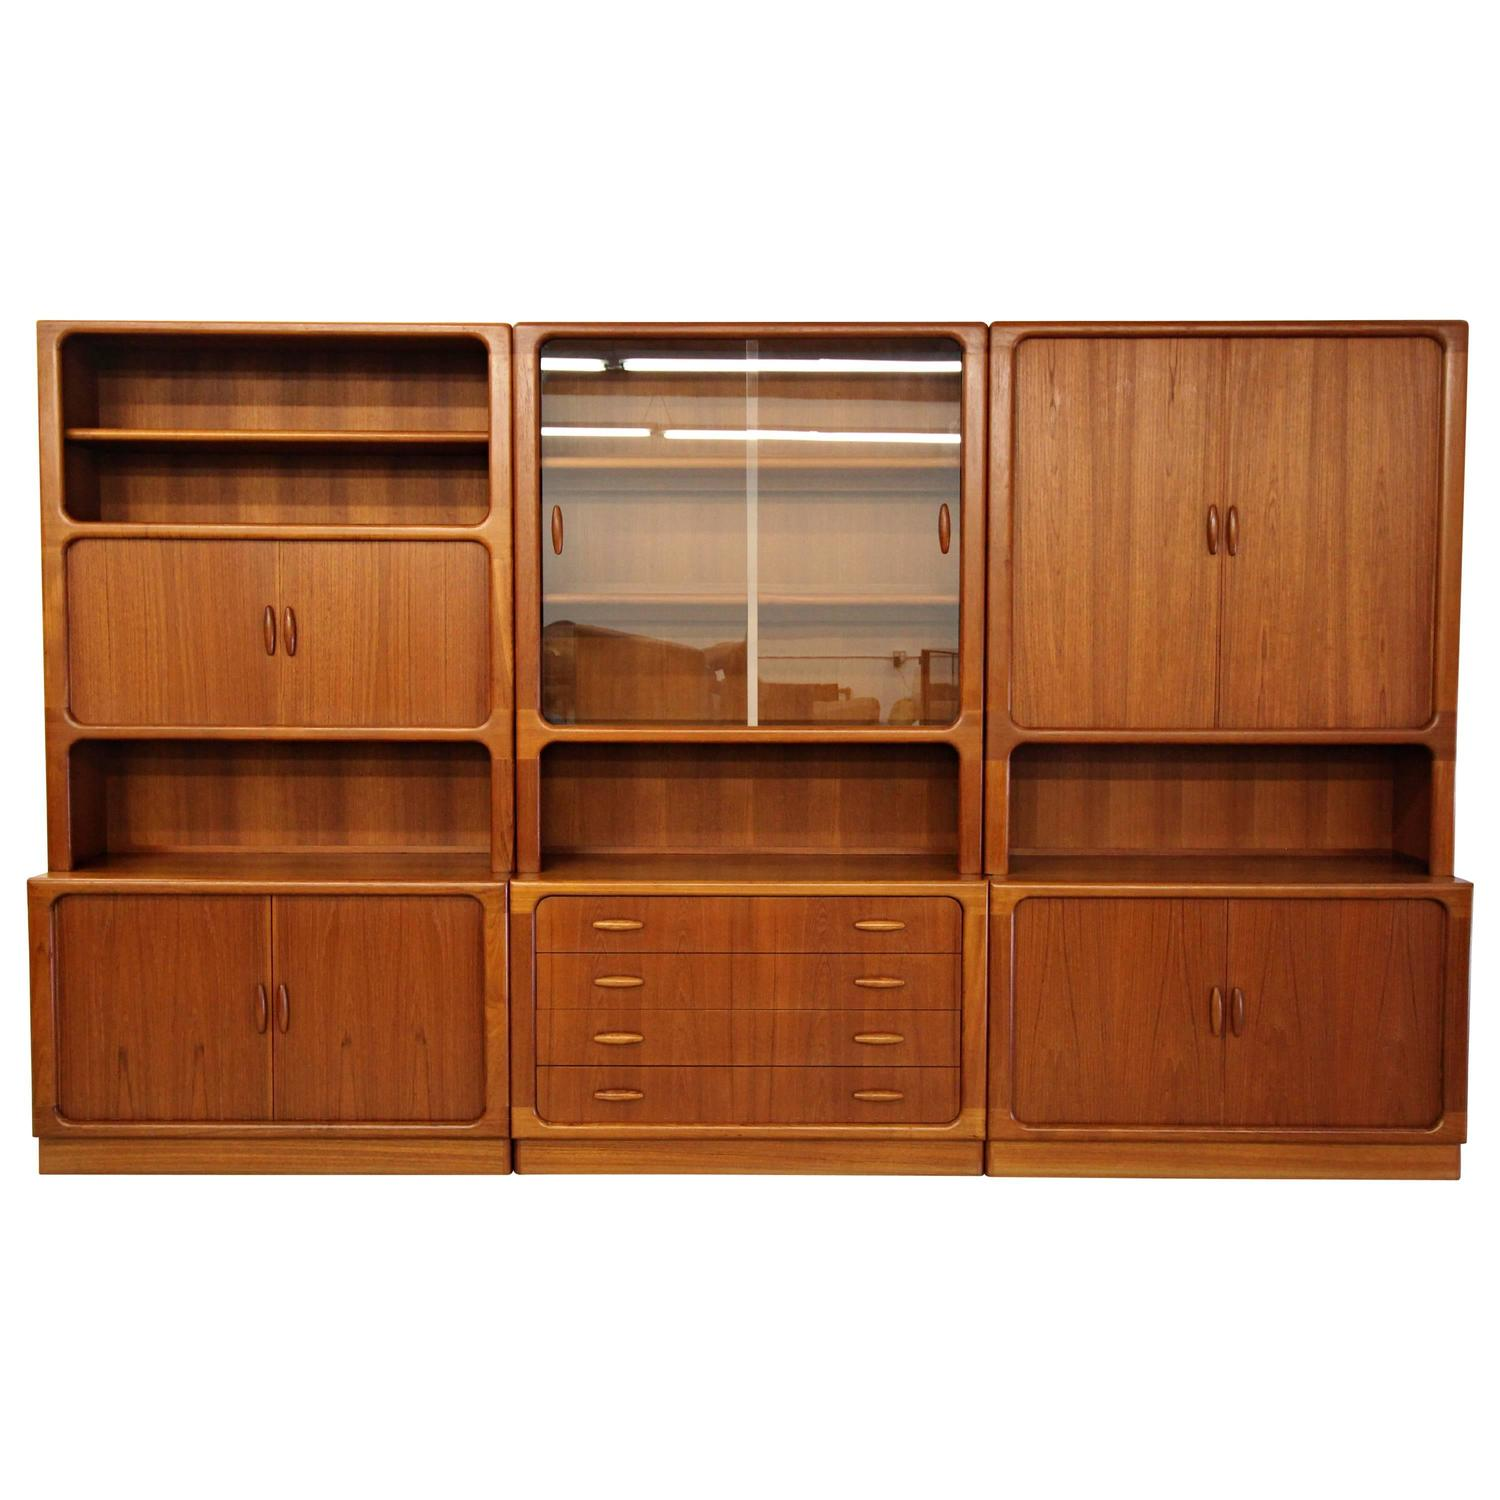 Set Of Three Midcentury Danish Teak Wall Unit Bookcase Shelving Units By  Dyrlund At 1stdibs